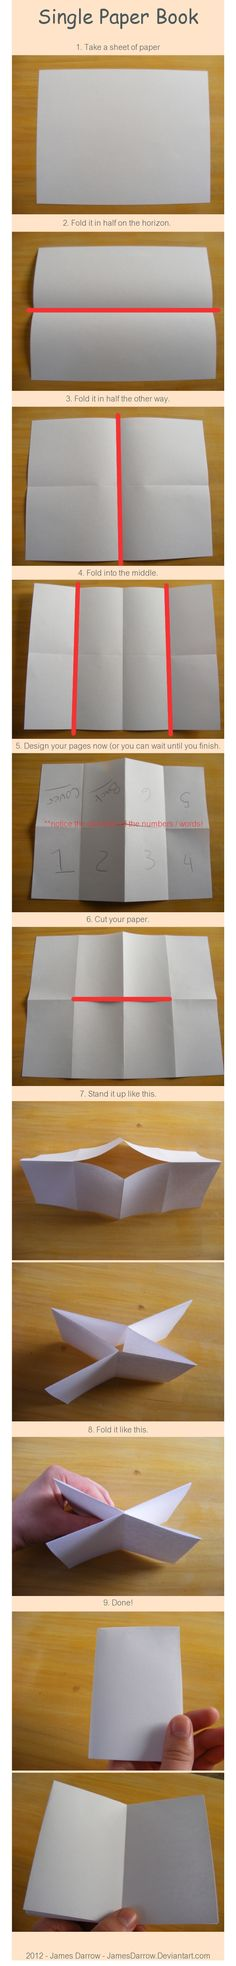 Single sheet of paper = mini book  Poof Book!